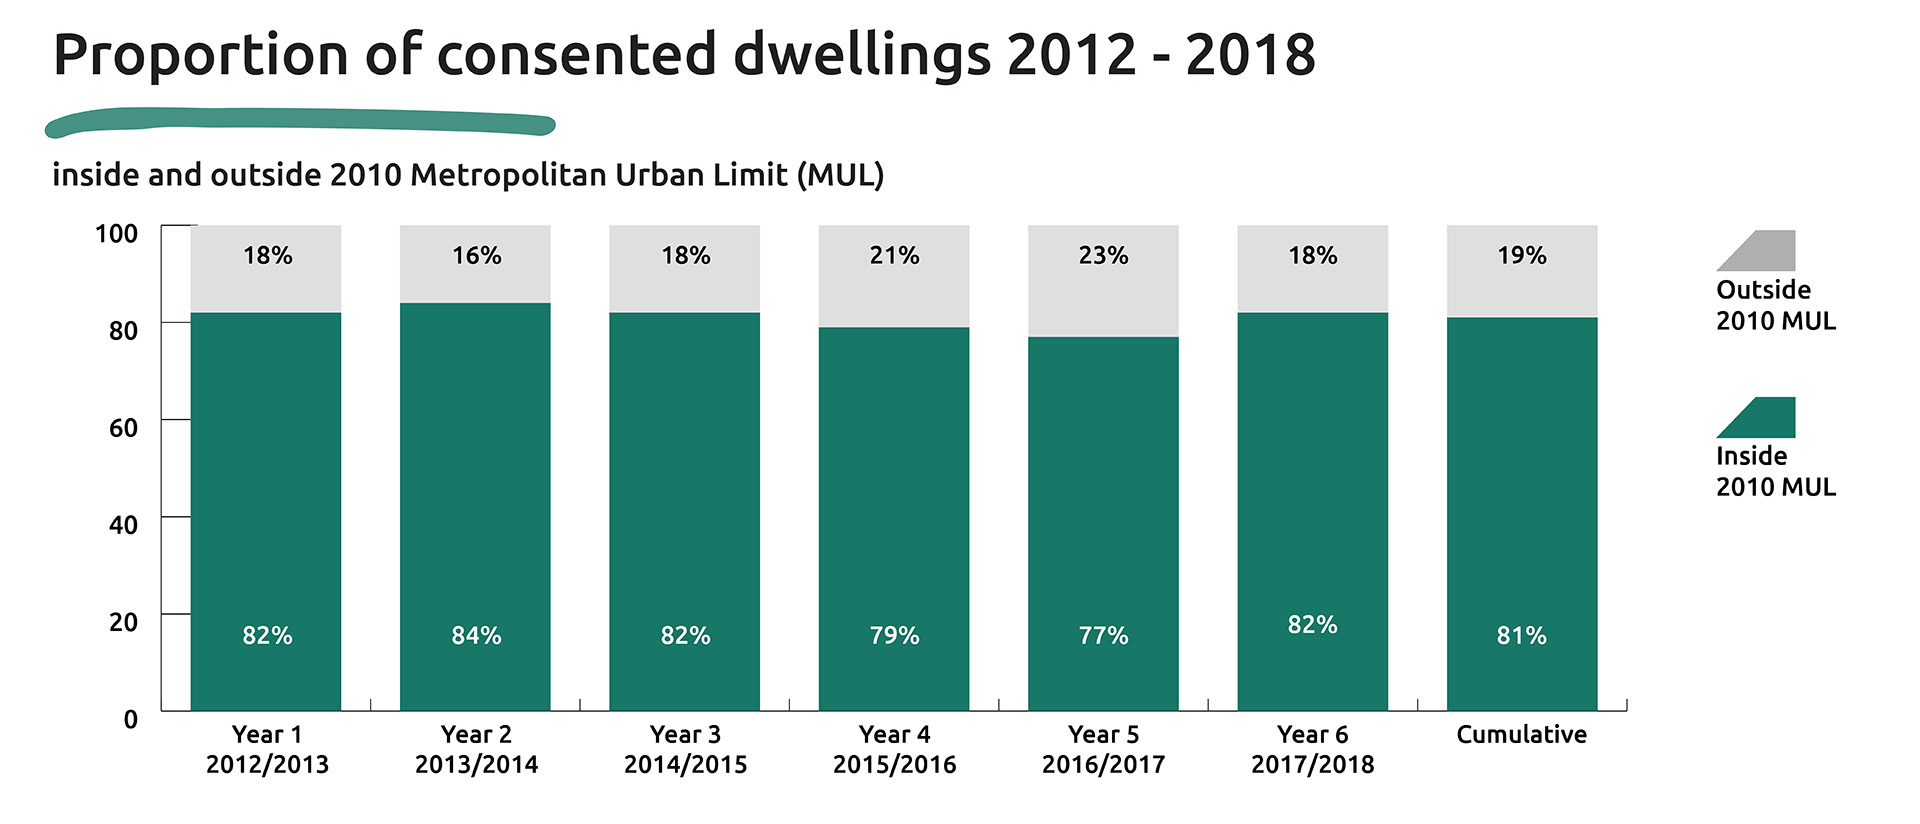 Graphic showing the proportion of consented dwellings from 2012 to 2018 inside and outside the 2010 Metropolitan Urban Limit (MUL).